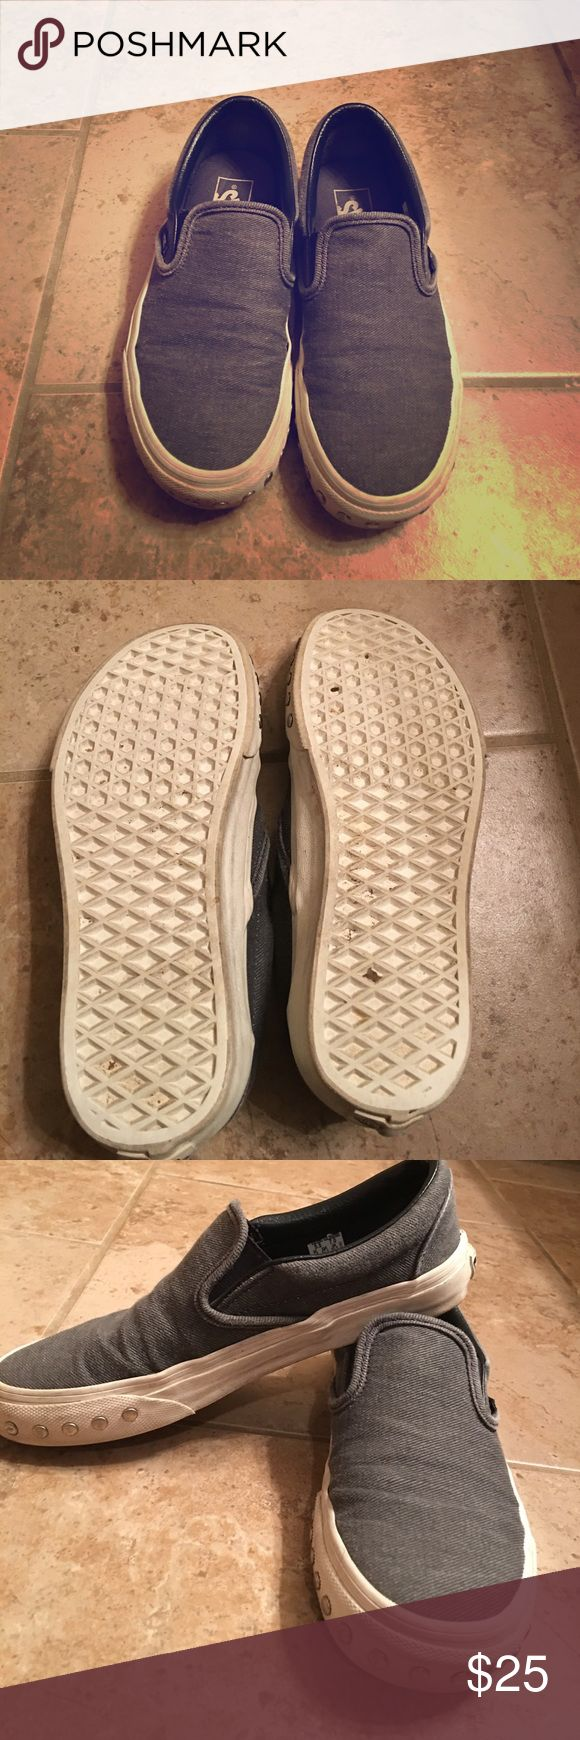 Studded Slip On Vans -Distressed studded Vans                                                 Slightly used but still in great condition                        These shoes are really comfortable, I just don't wear them very often Vans Shoes Sneakers